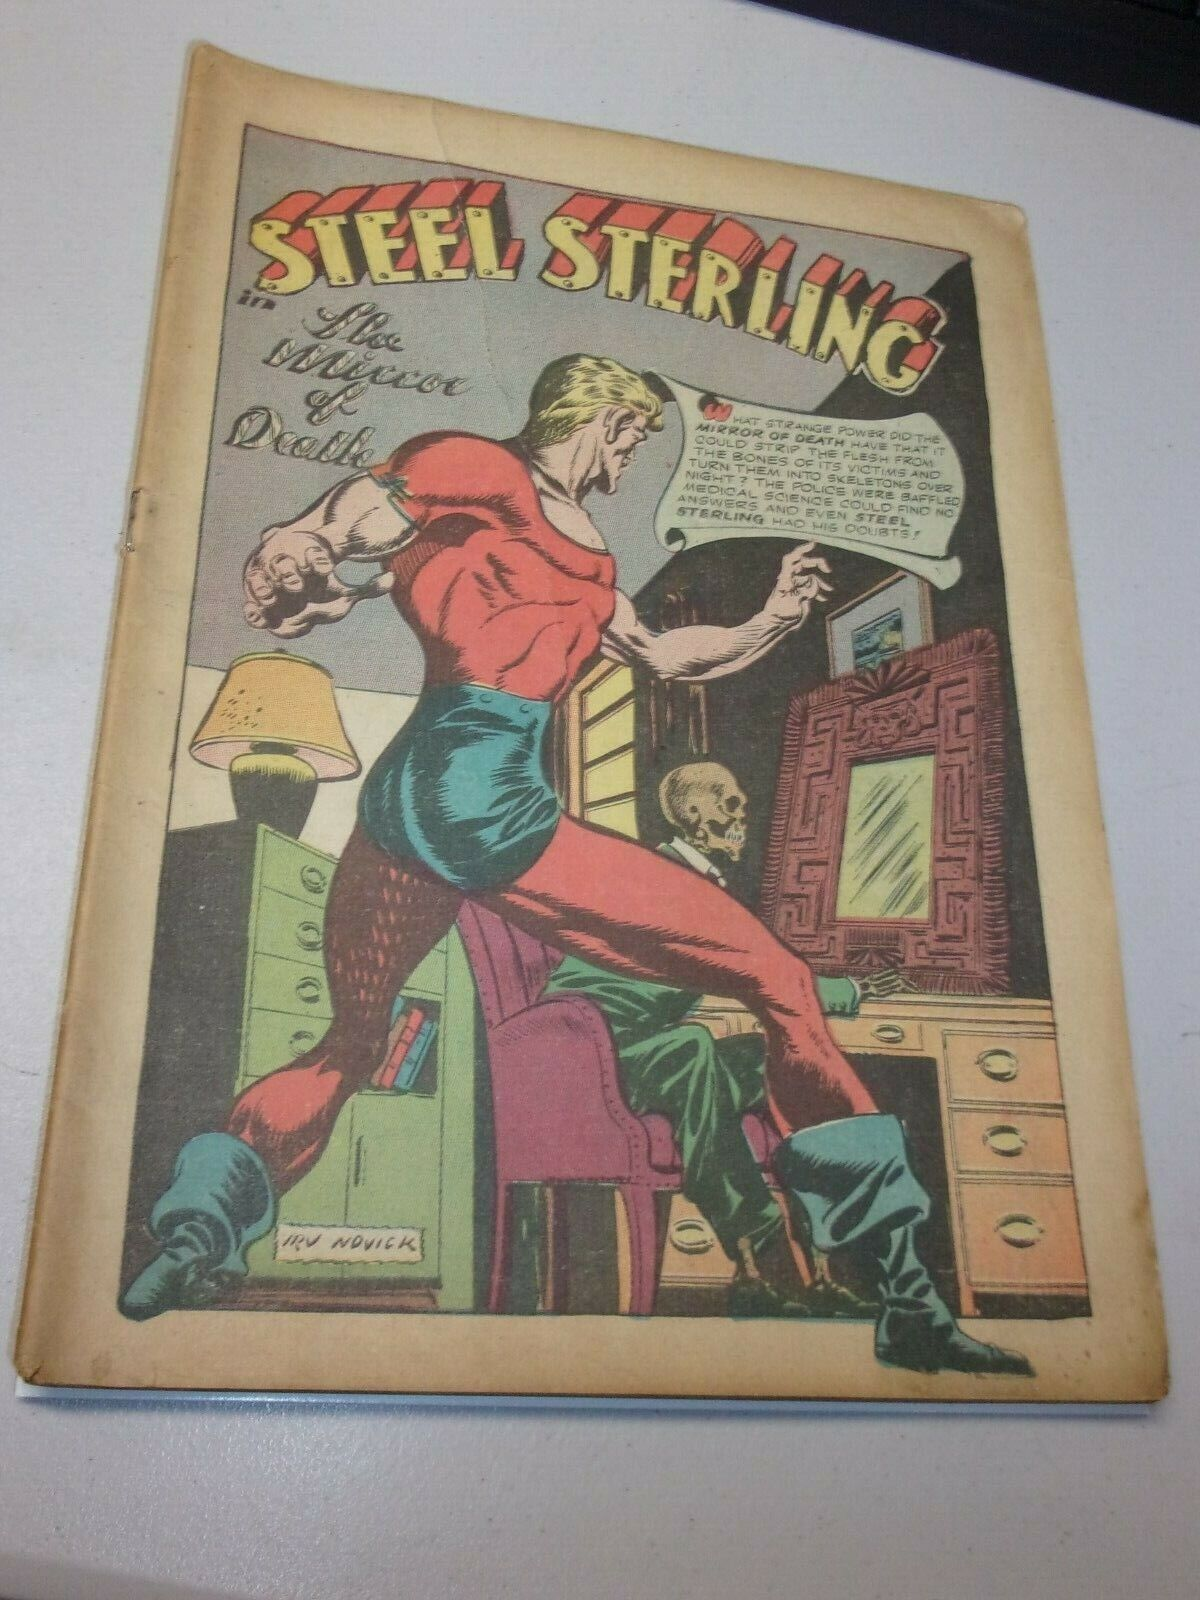 Zip Comics 37 Steel Sterling The Web Cover-less Golden Age Classic - $80.48